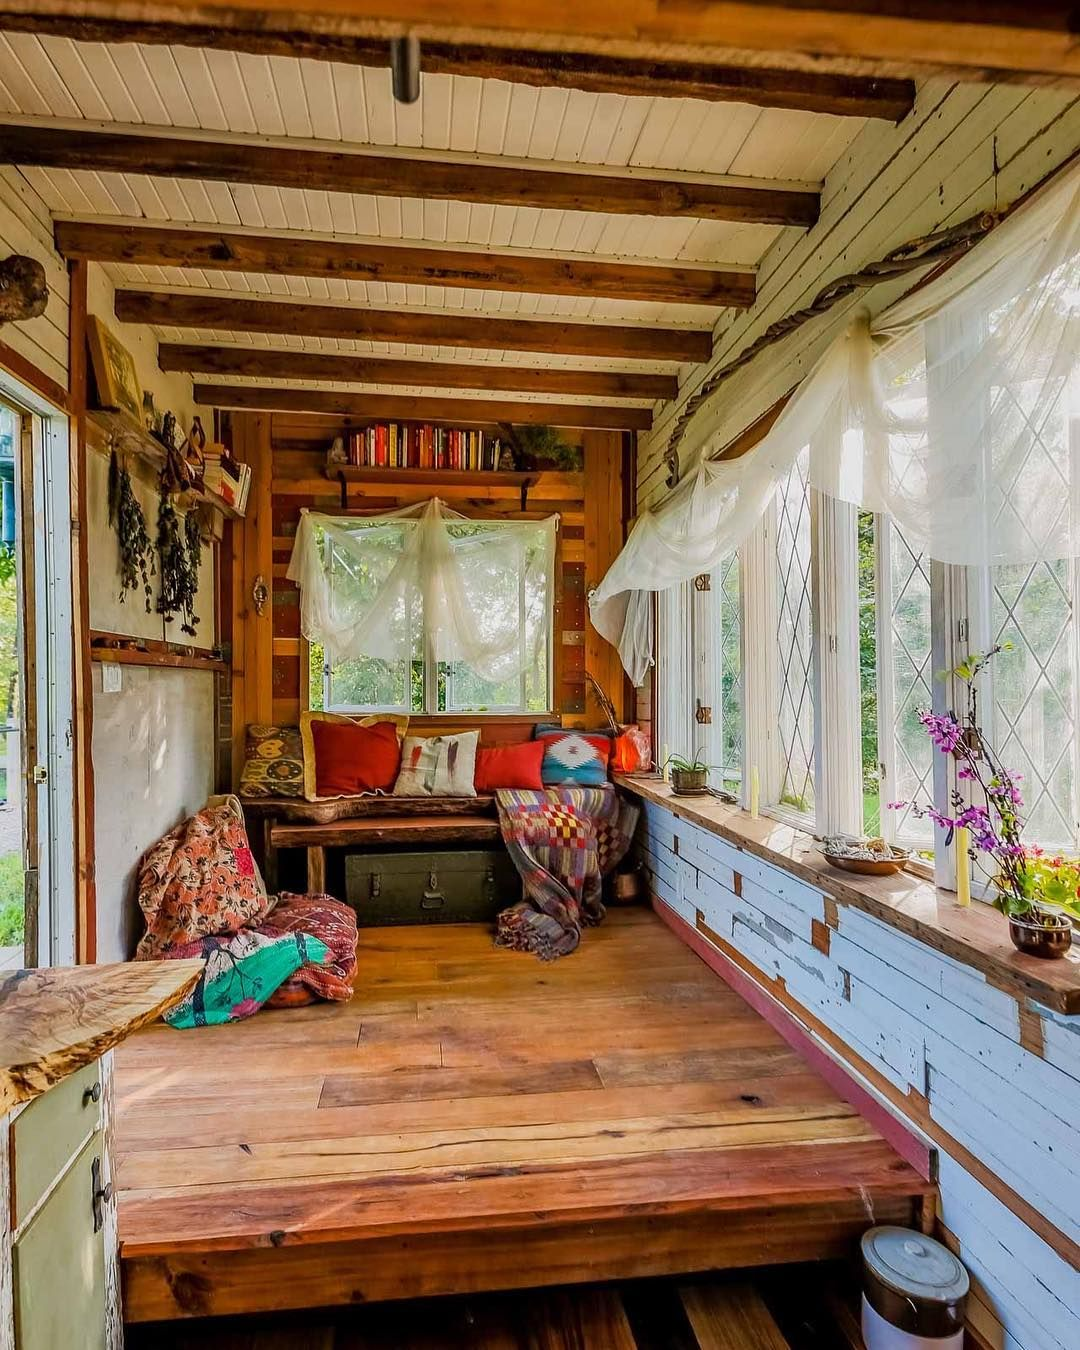 Living Big In A Tiny House Our Traveling Tiny Home In North America Tiny House Big Living Tiny House On Wheels Traveling Tiny House